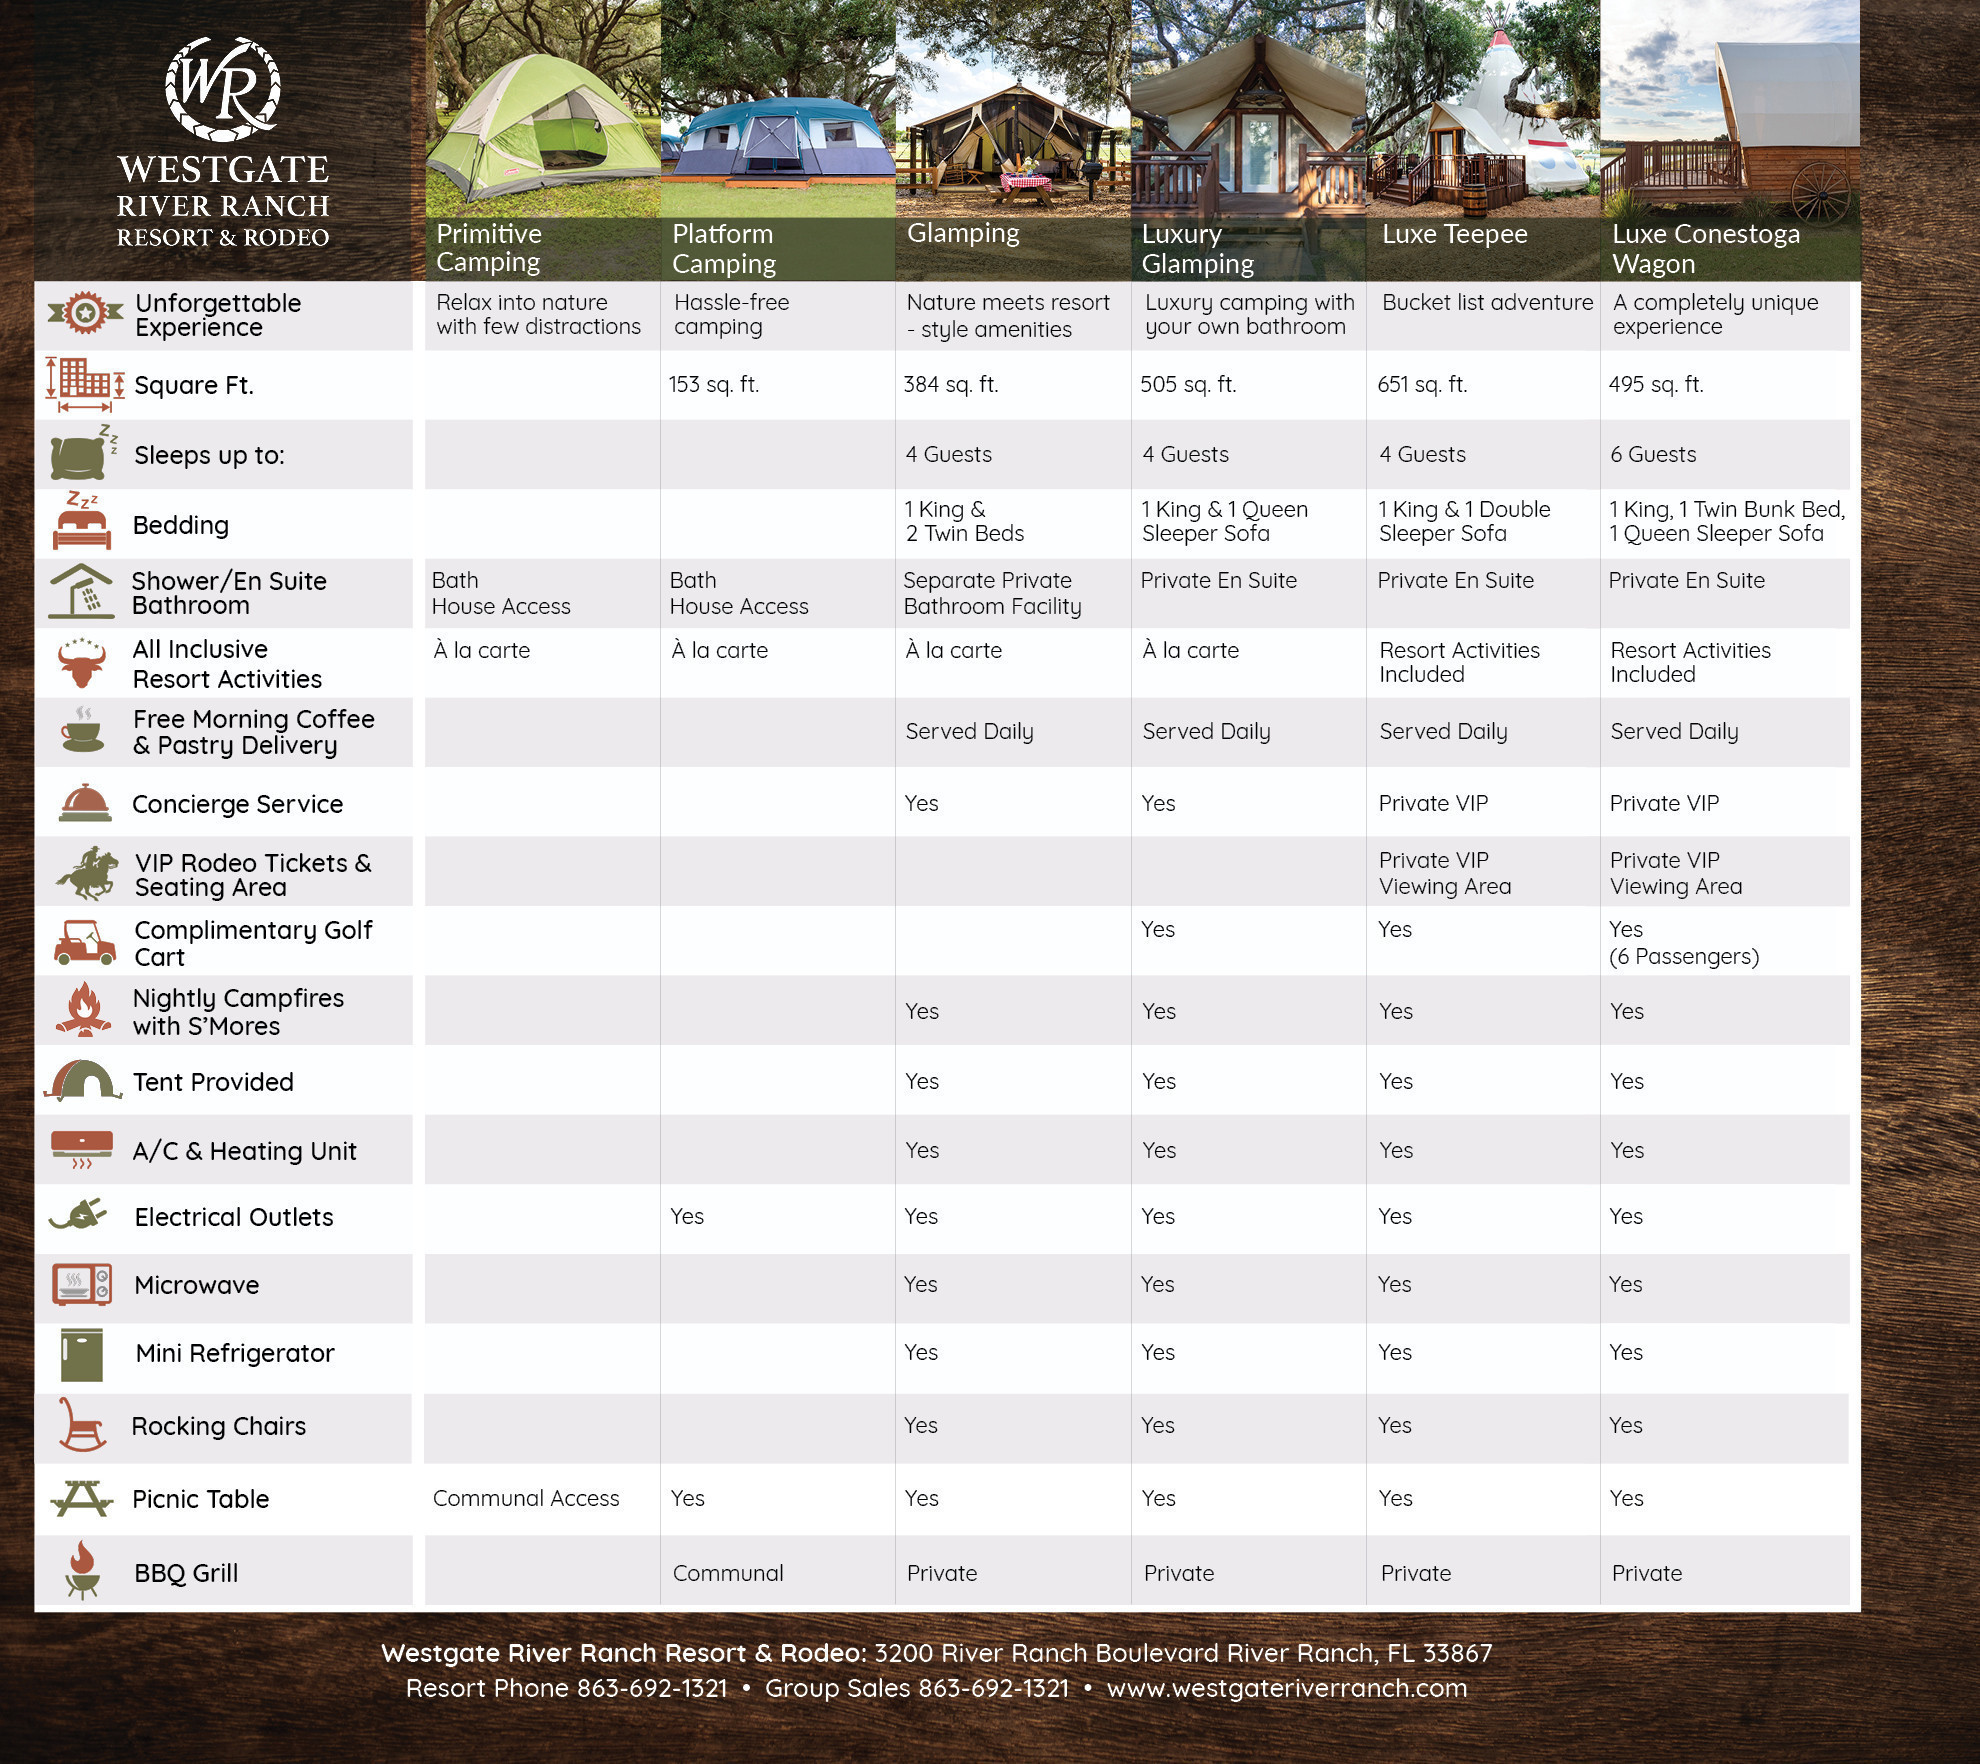 Compare Camping Options at Westgate River Ranch!